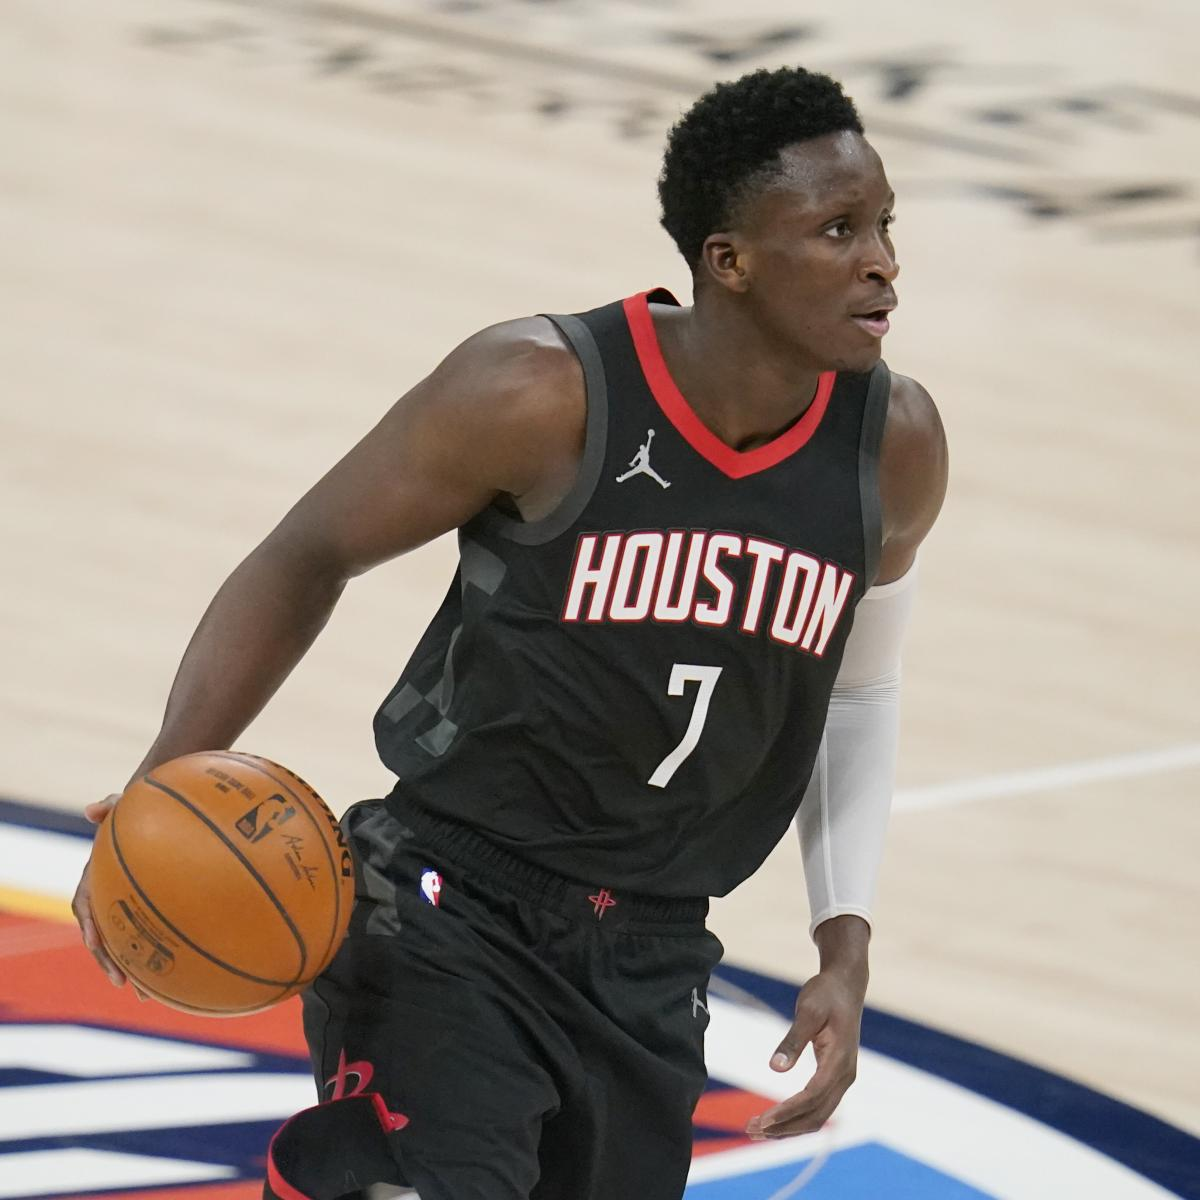 Victor Oladipo Rumors: Rockets Star Rejected 2-Year, $45.2M Contract Extension